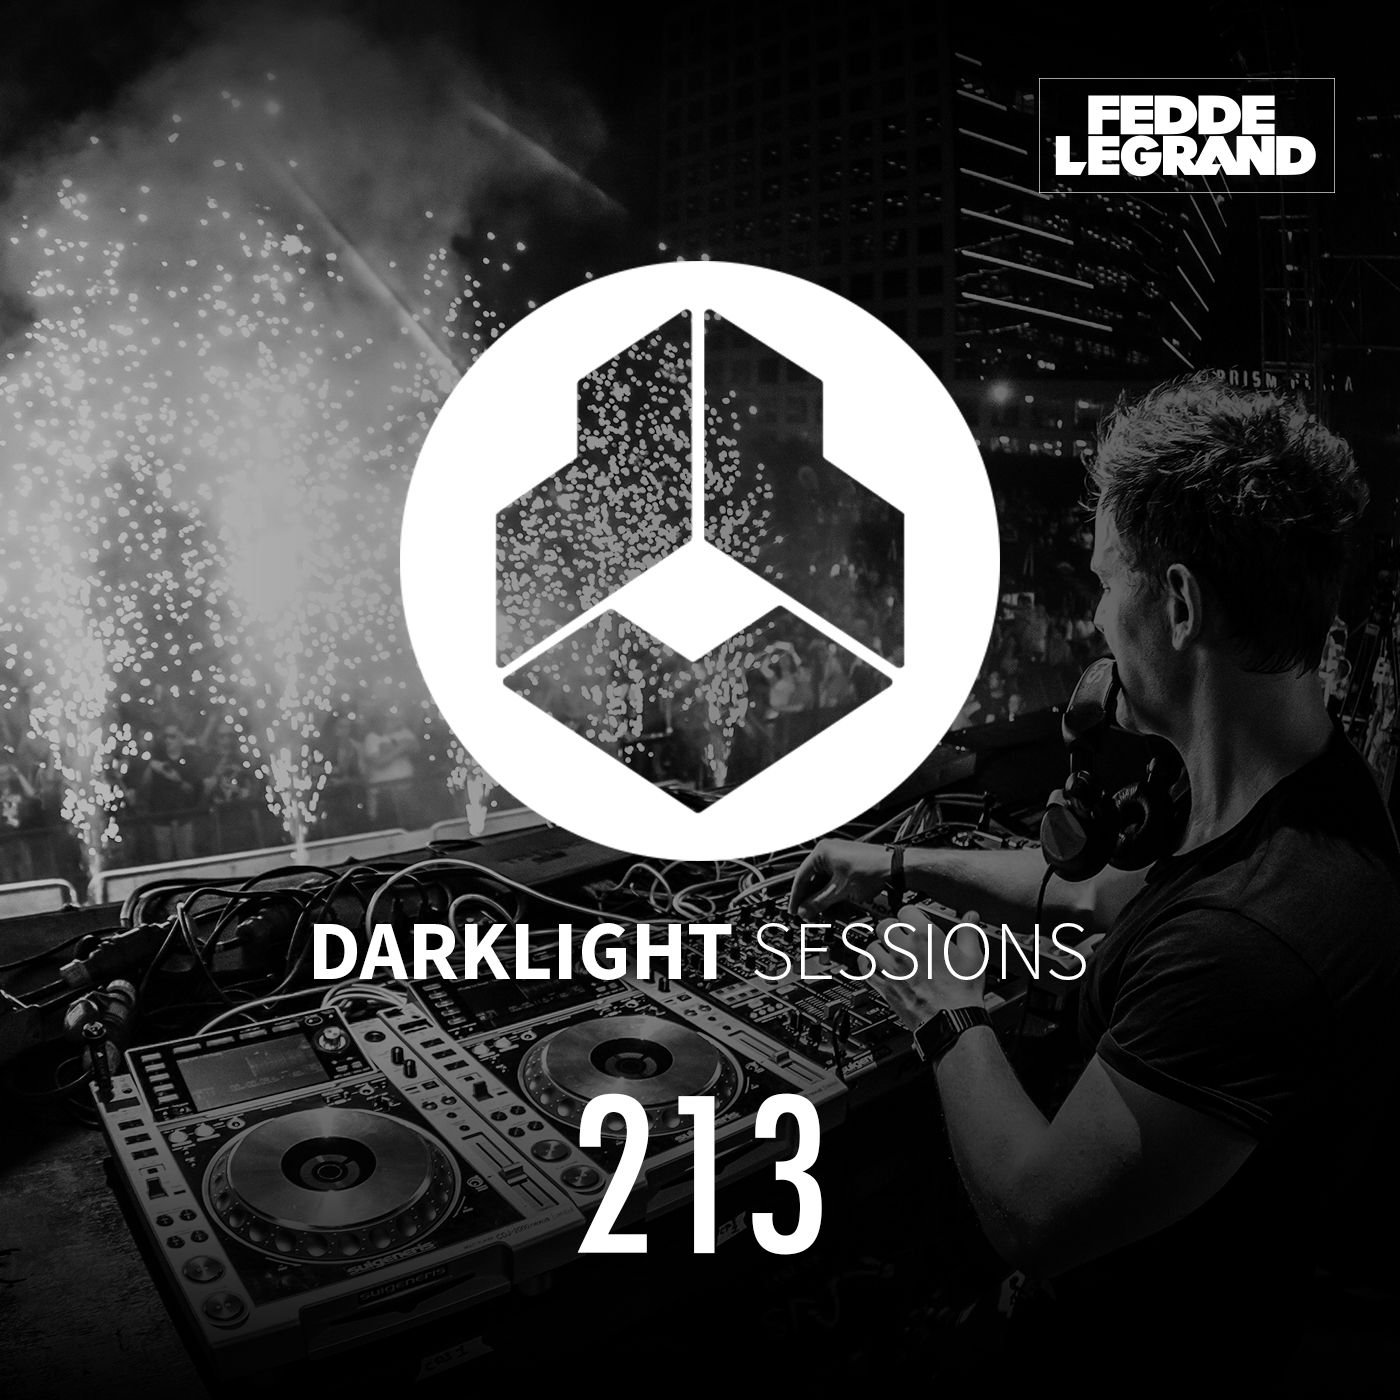 Darklight Sessions 213